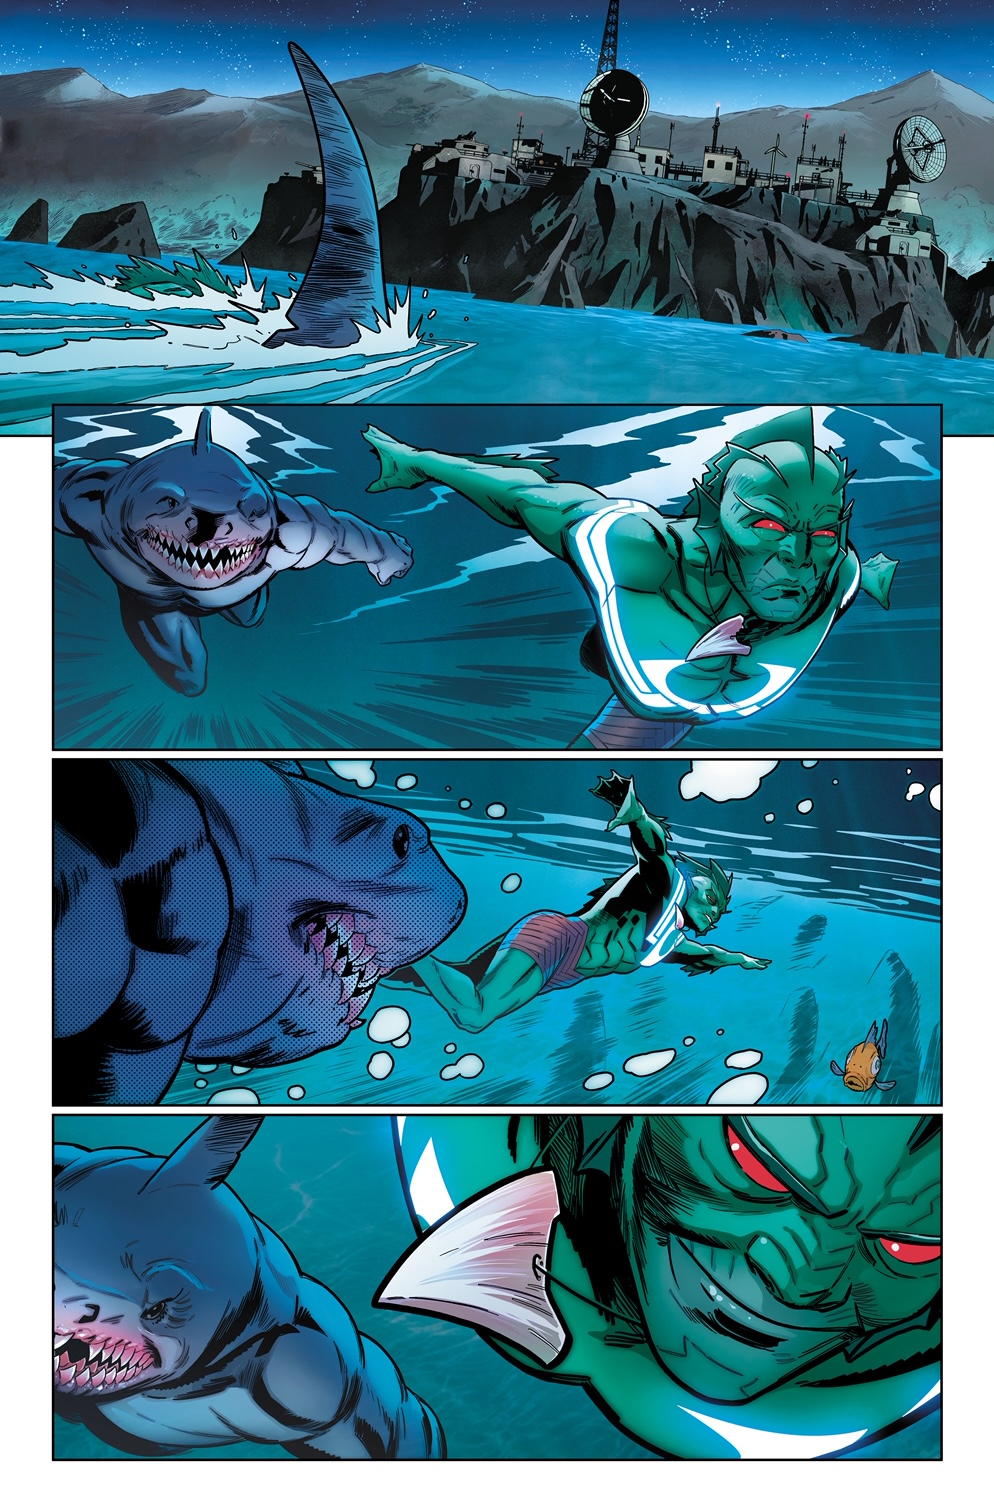 Suicide Squad #2 is written by Tom Tyler with art by Bruno Redondo